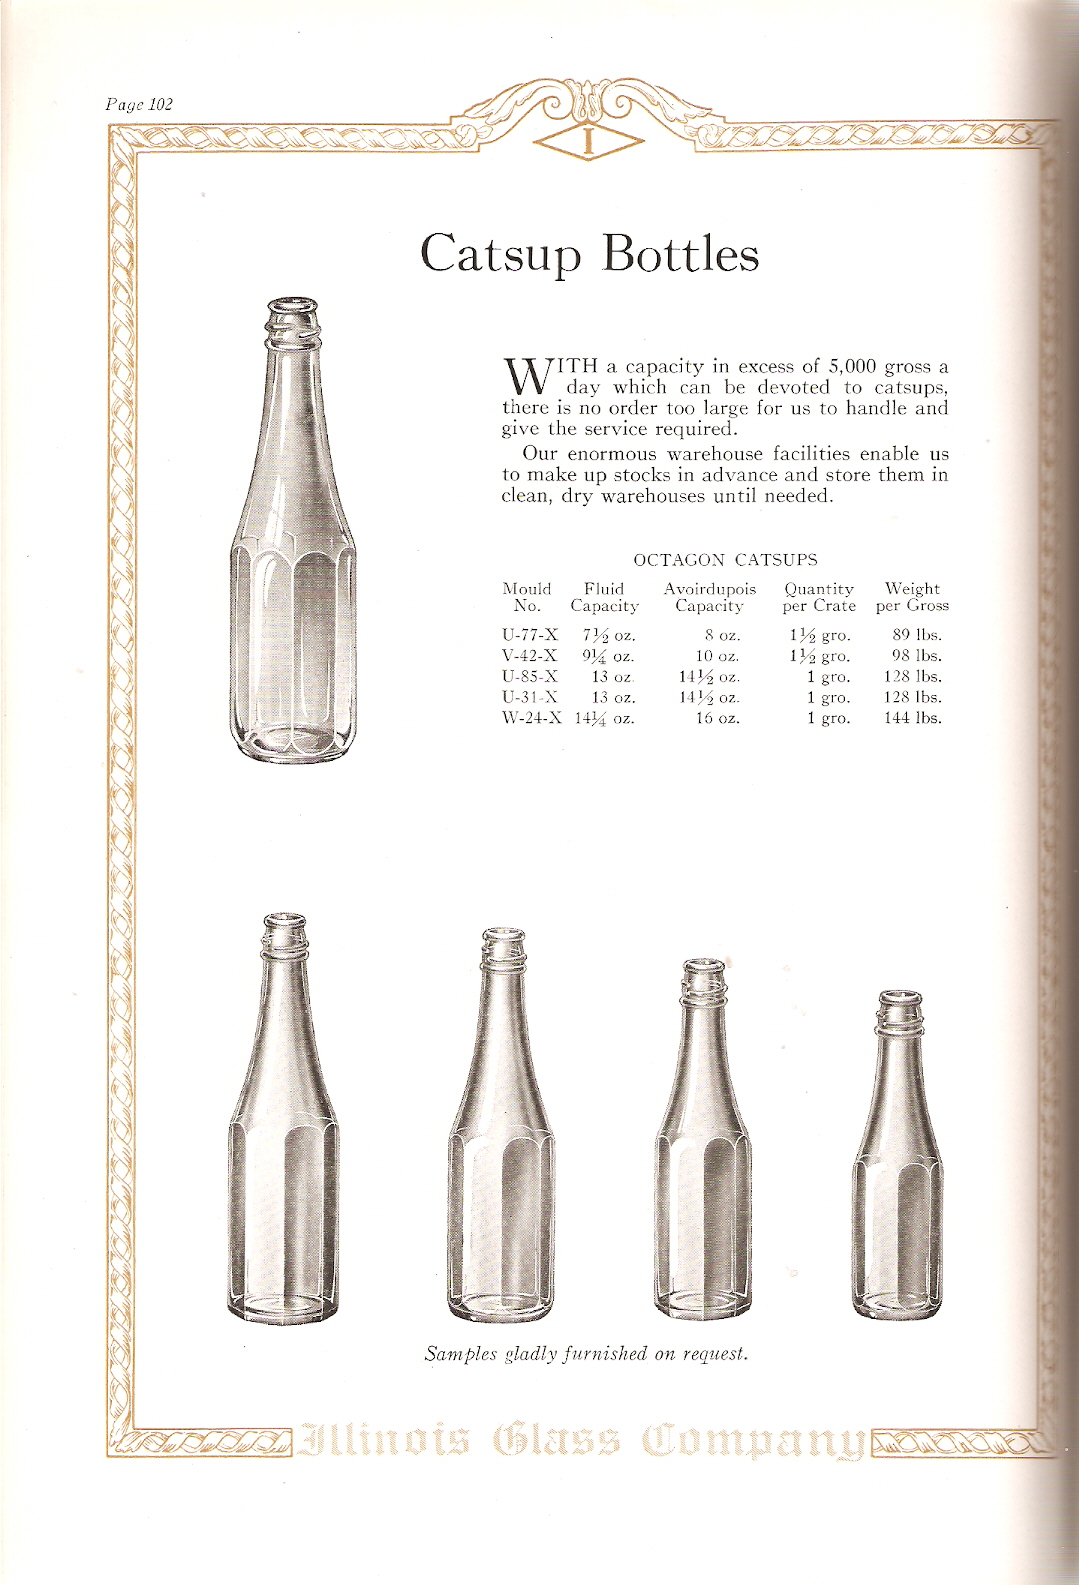 dating owens-illinois glass bottles